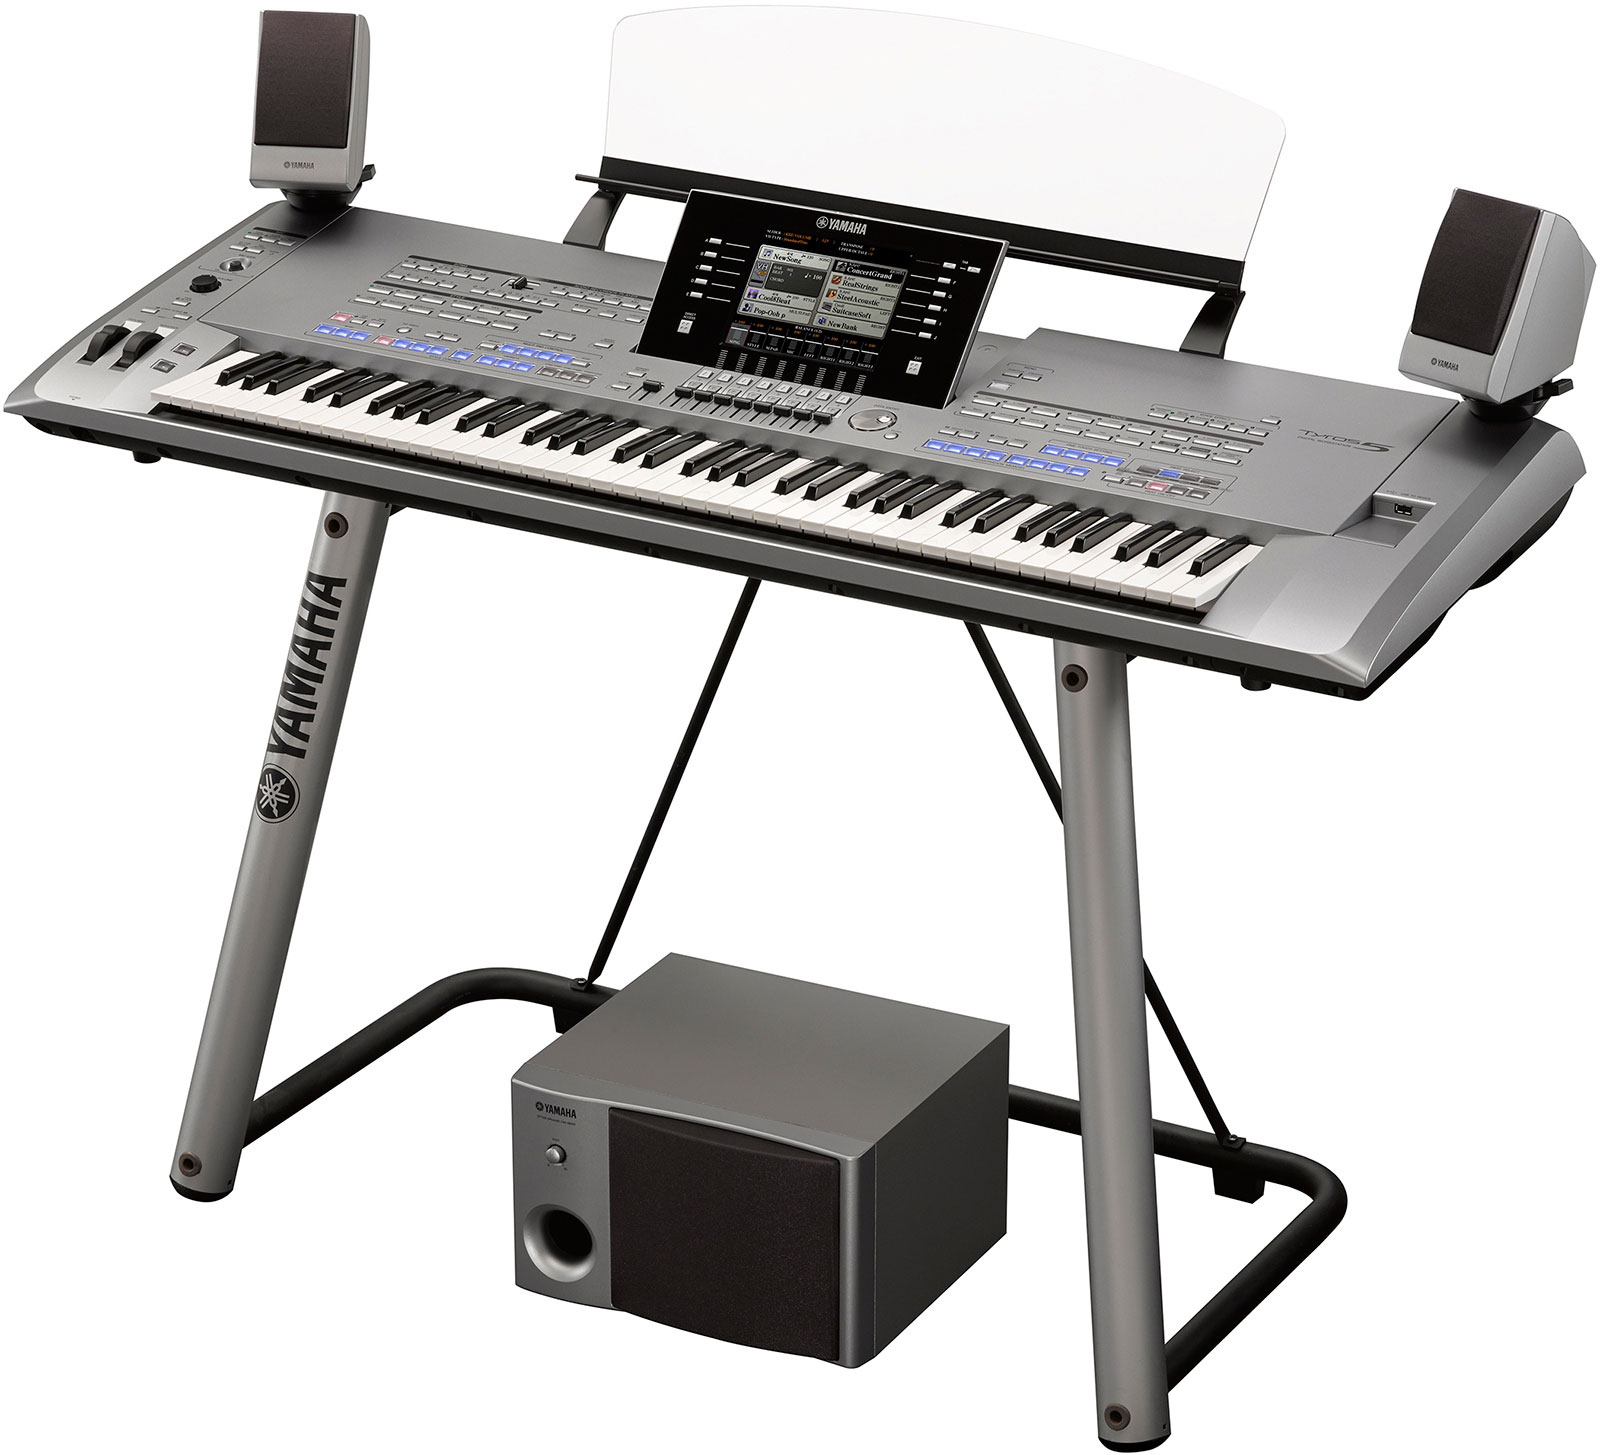 Yamaha tyros 5 61 and 76 key models announced piano and for Yamaha tyros 5